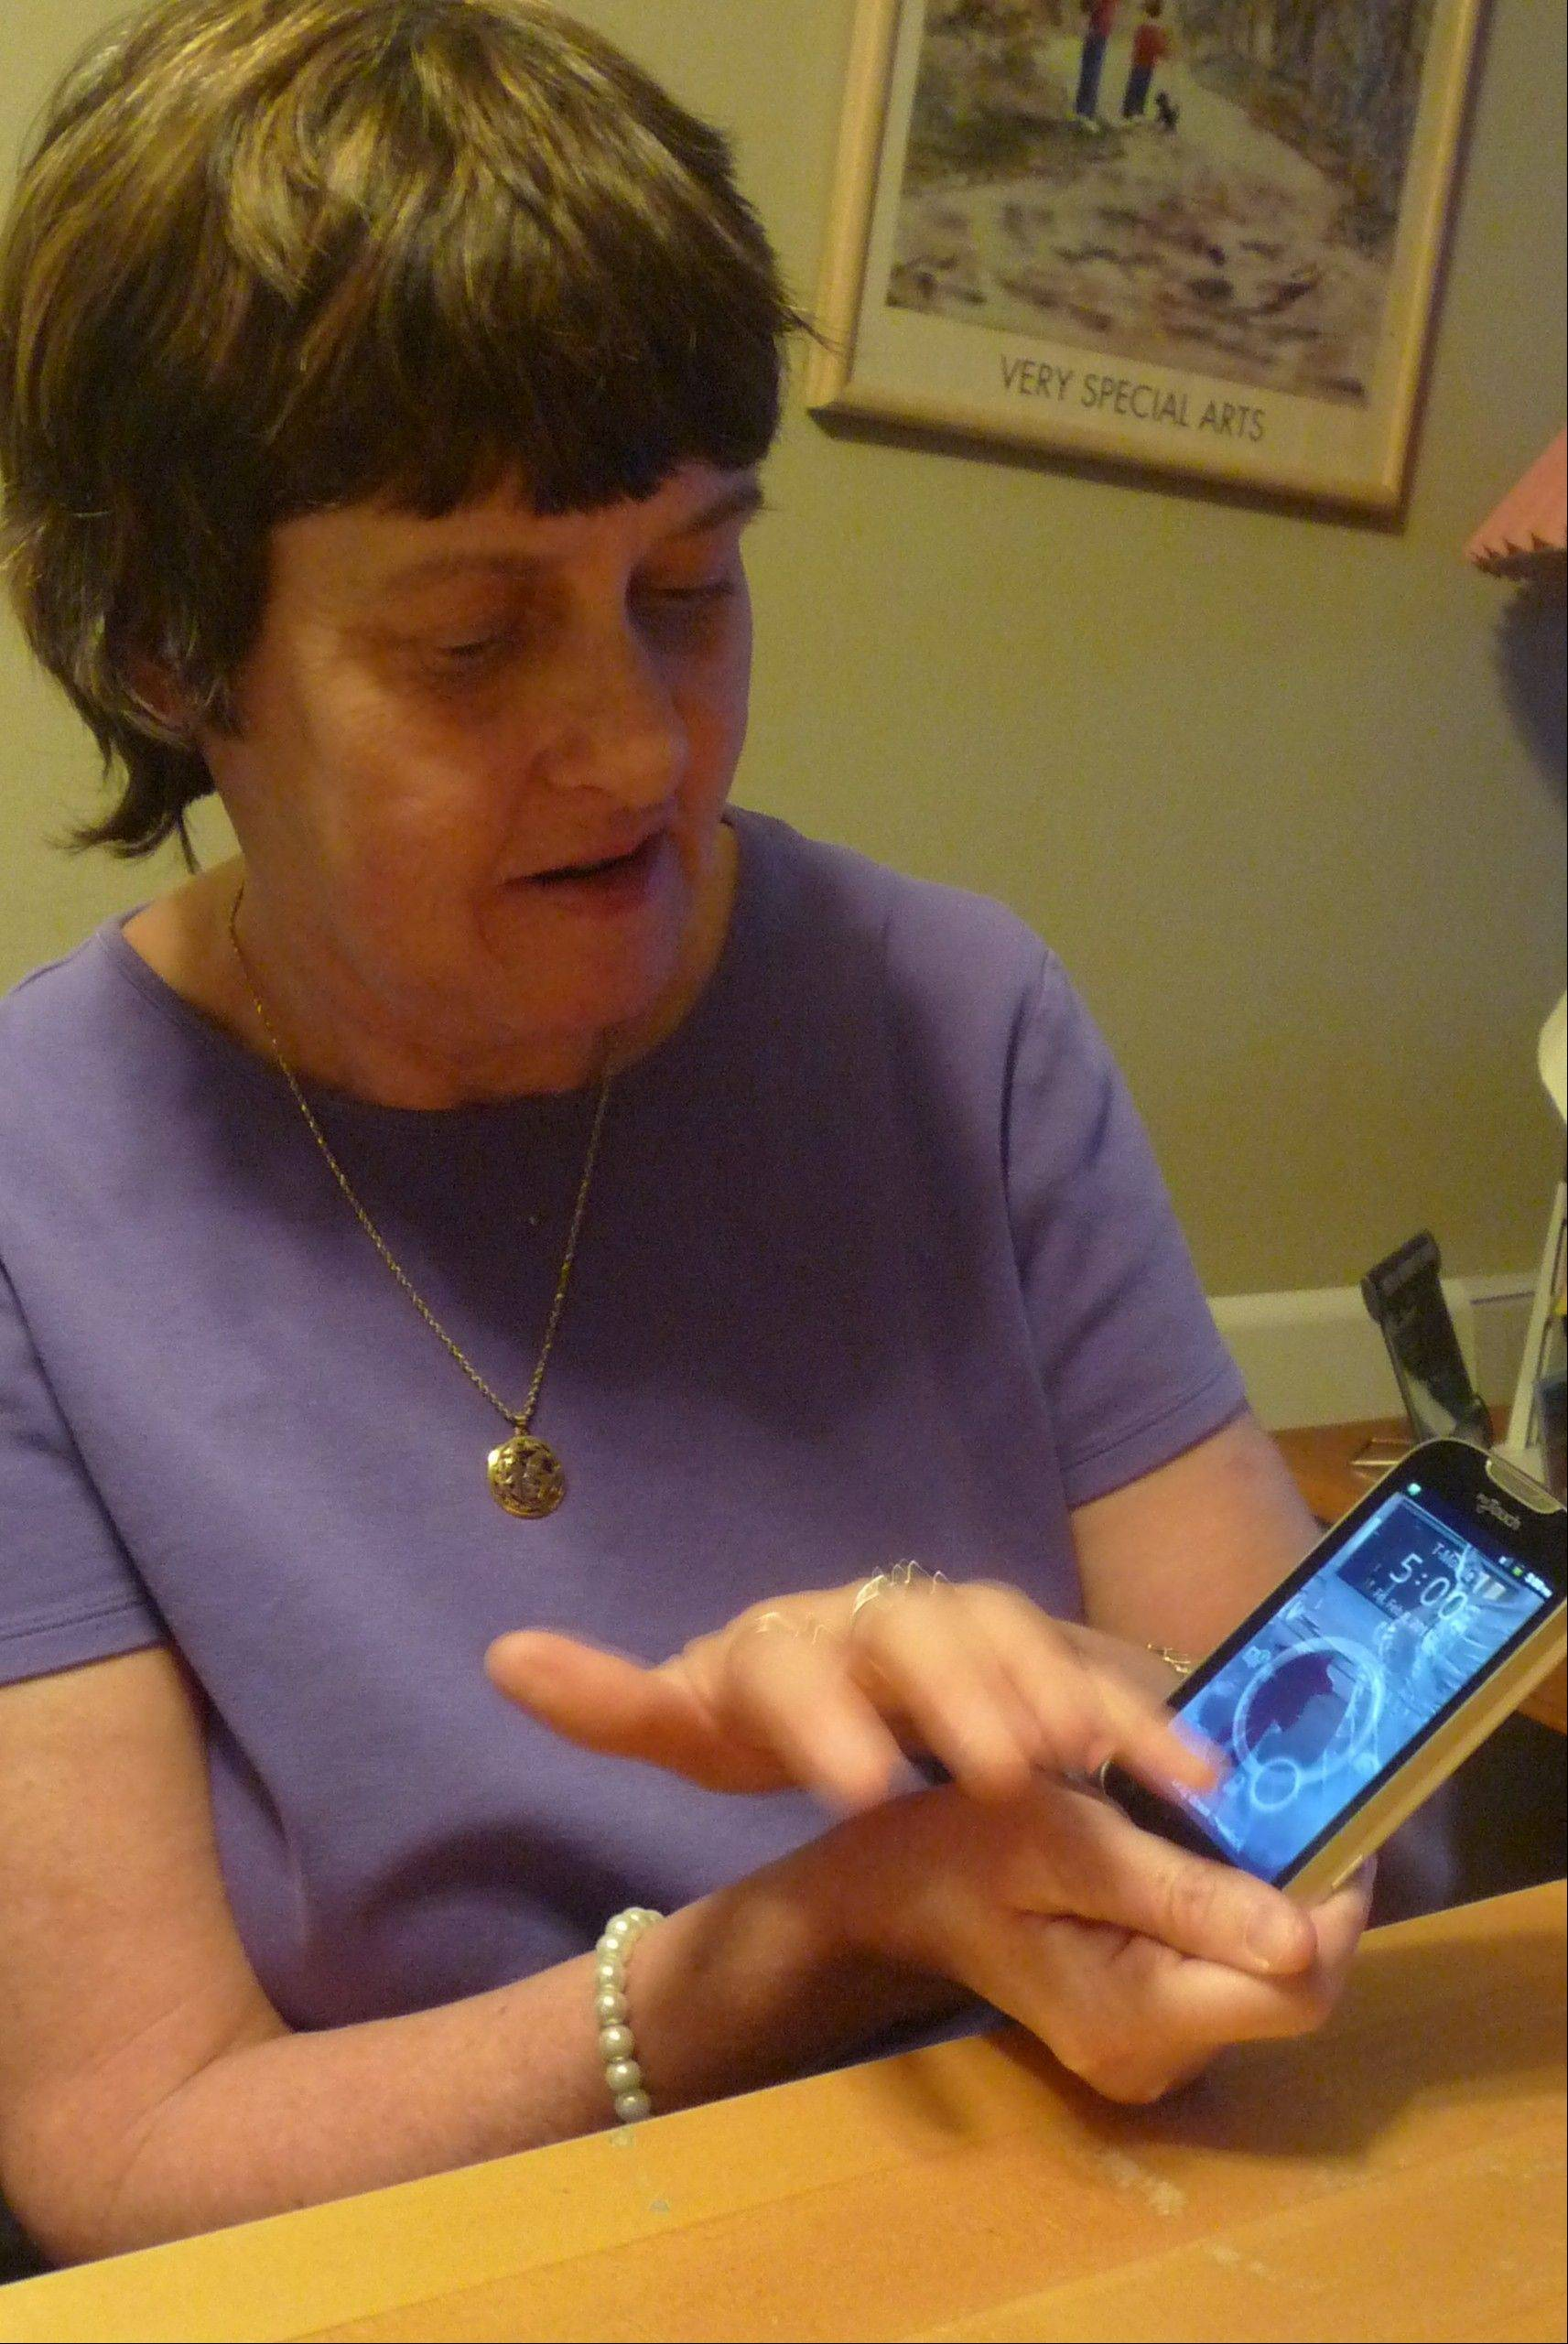 Having received help throughout her life, Cindy Moore has a good job and her own apartment in spite of a developmental disability. But she says buying this smartphone got her into trouble.